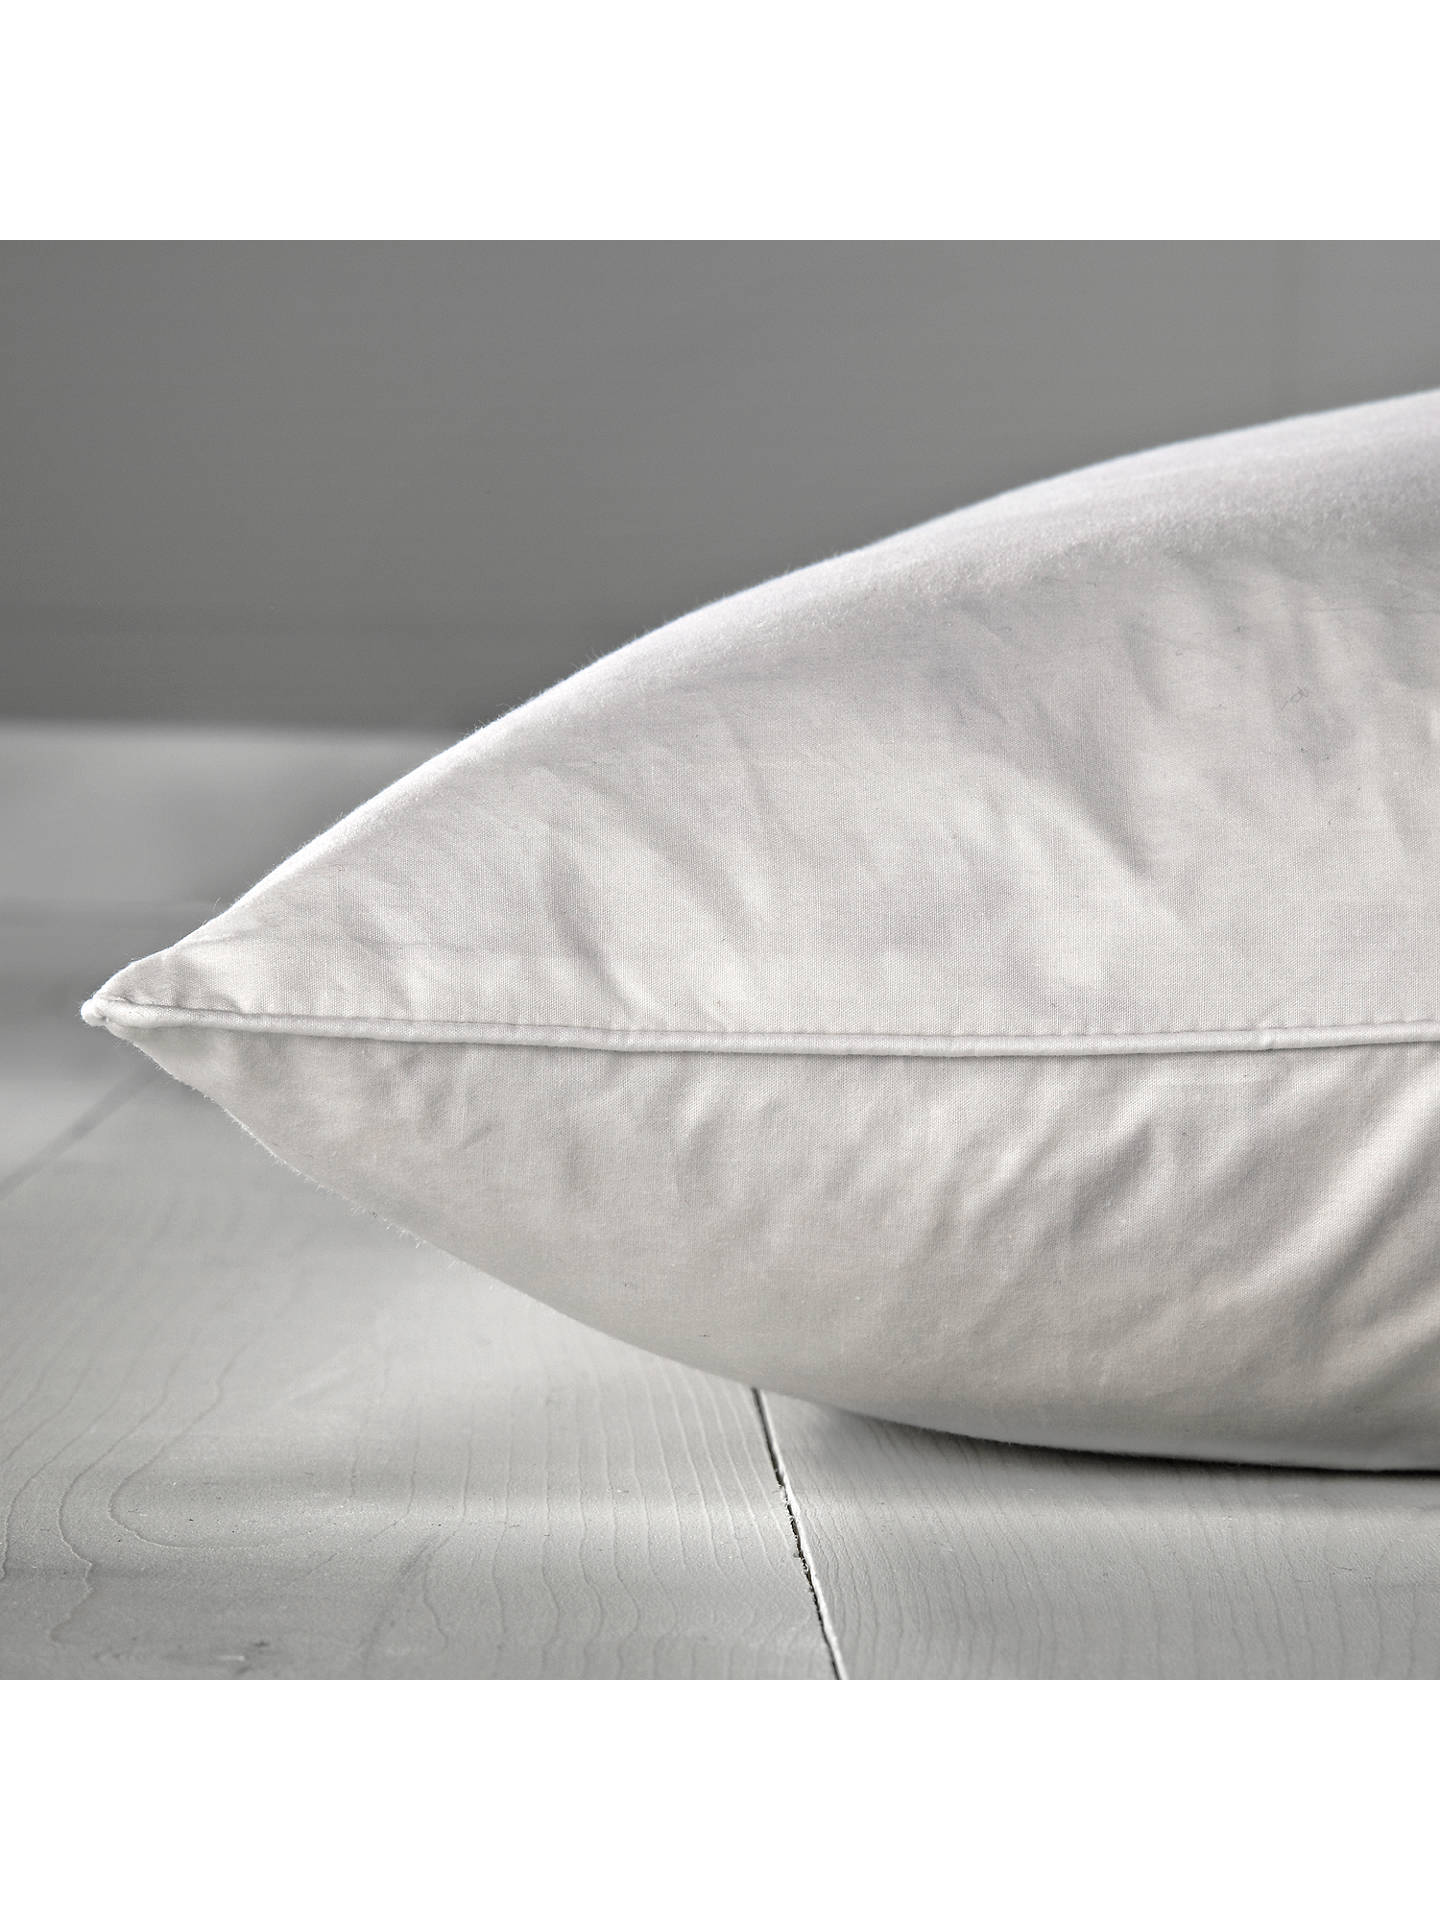 BuyJohn Lewis & Partners Natural Duck Feather Standard Pillow, Soft Online at johnlewis.com